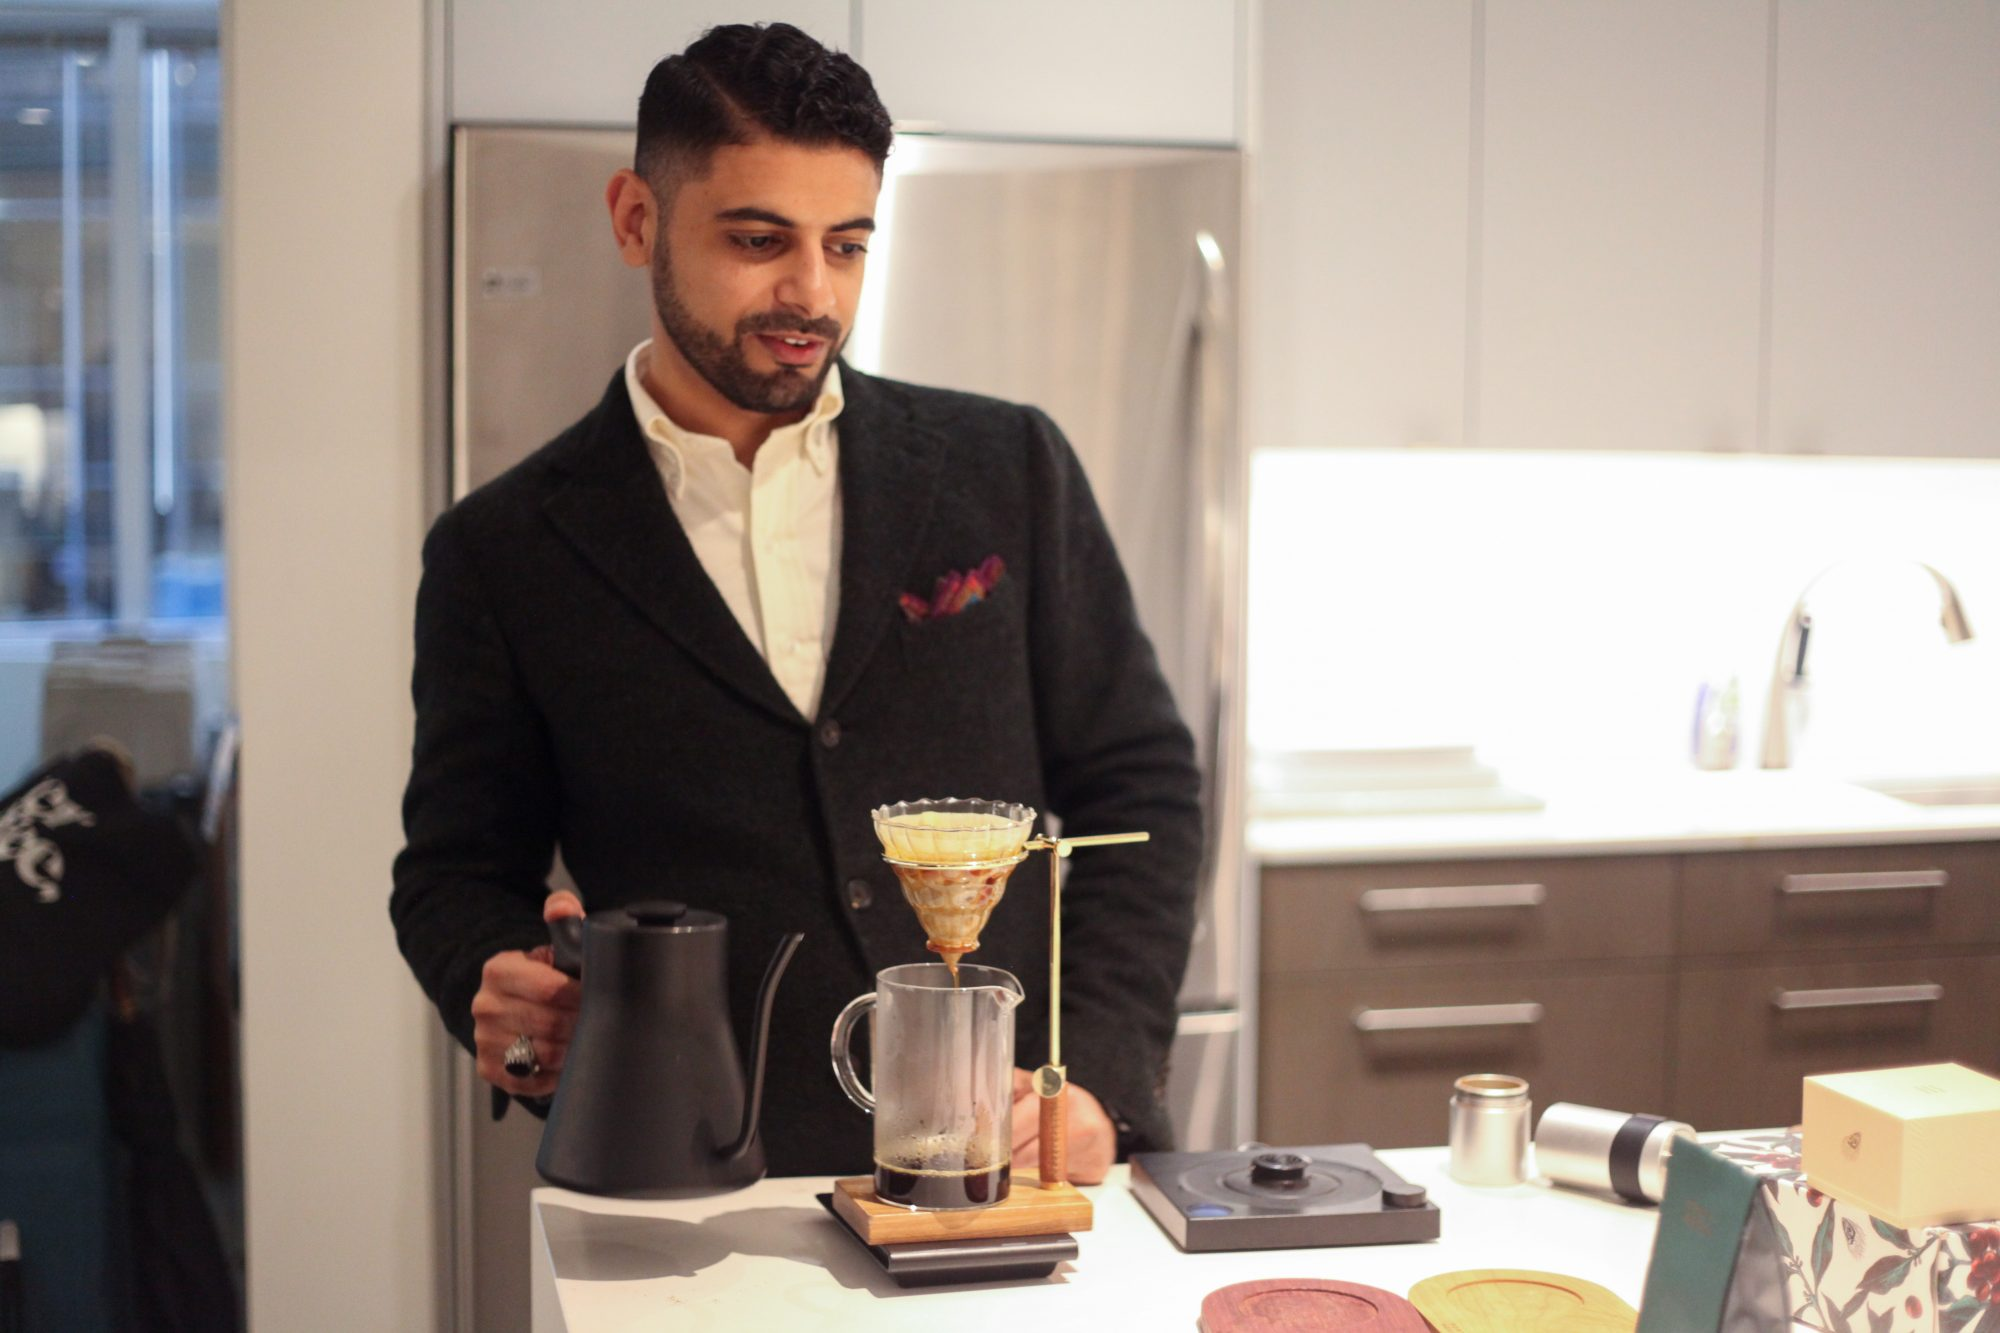 port of mokha founder making coffee in the test kitchen